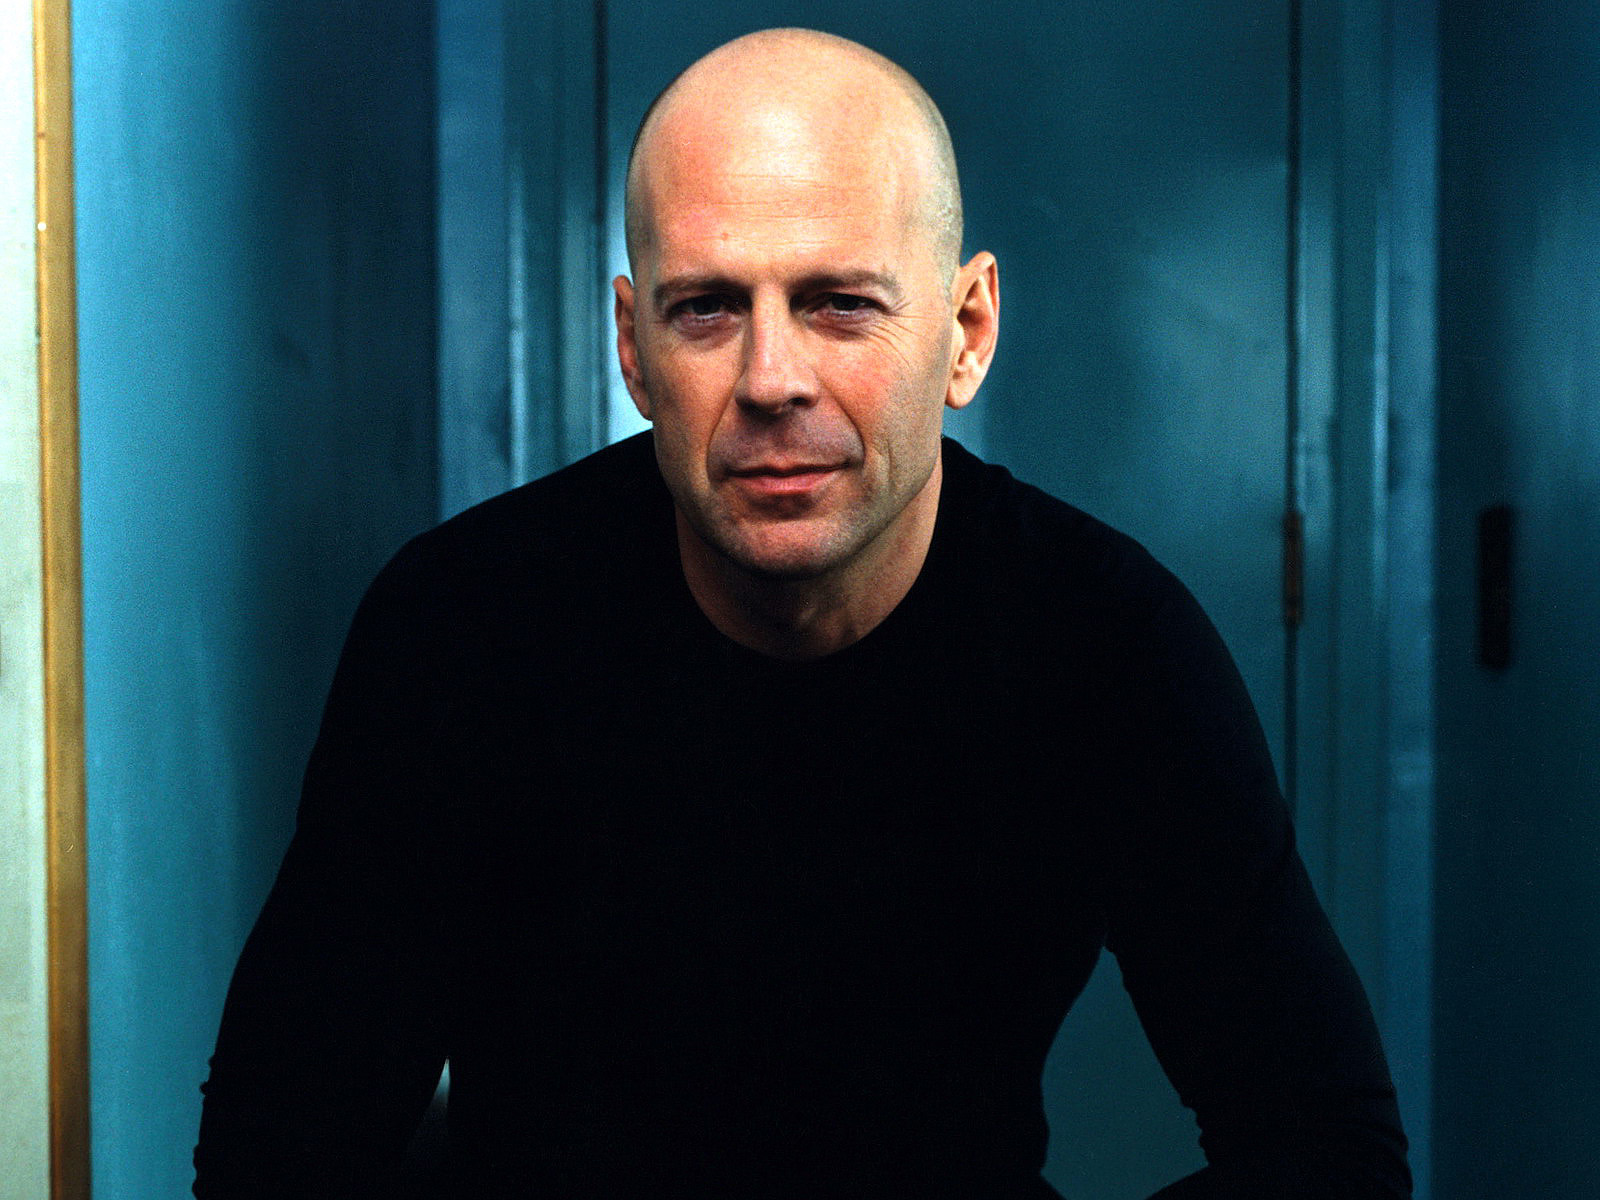 walter bruce willis born march 19 1955 better known as bruce willis is ... Bruce Willis